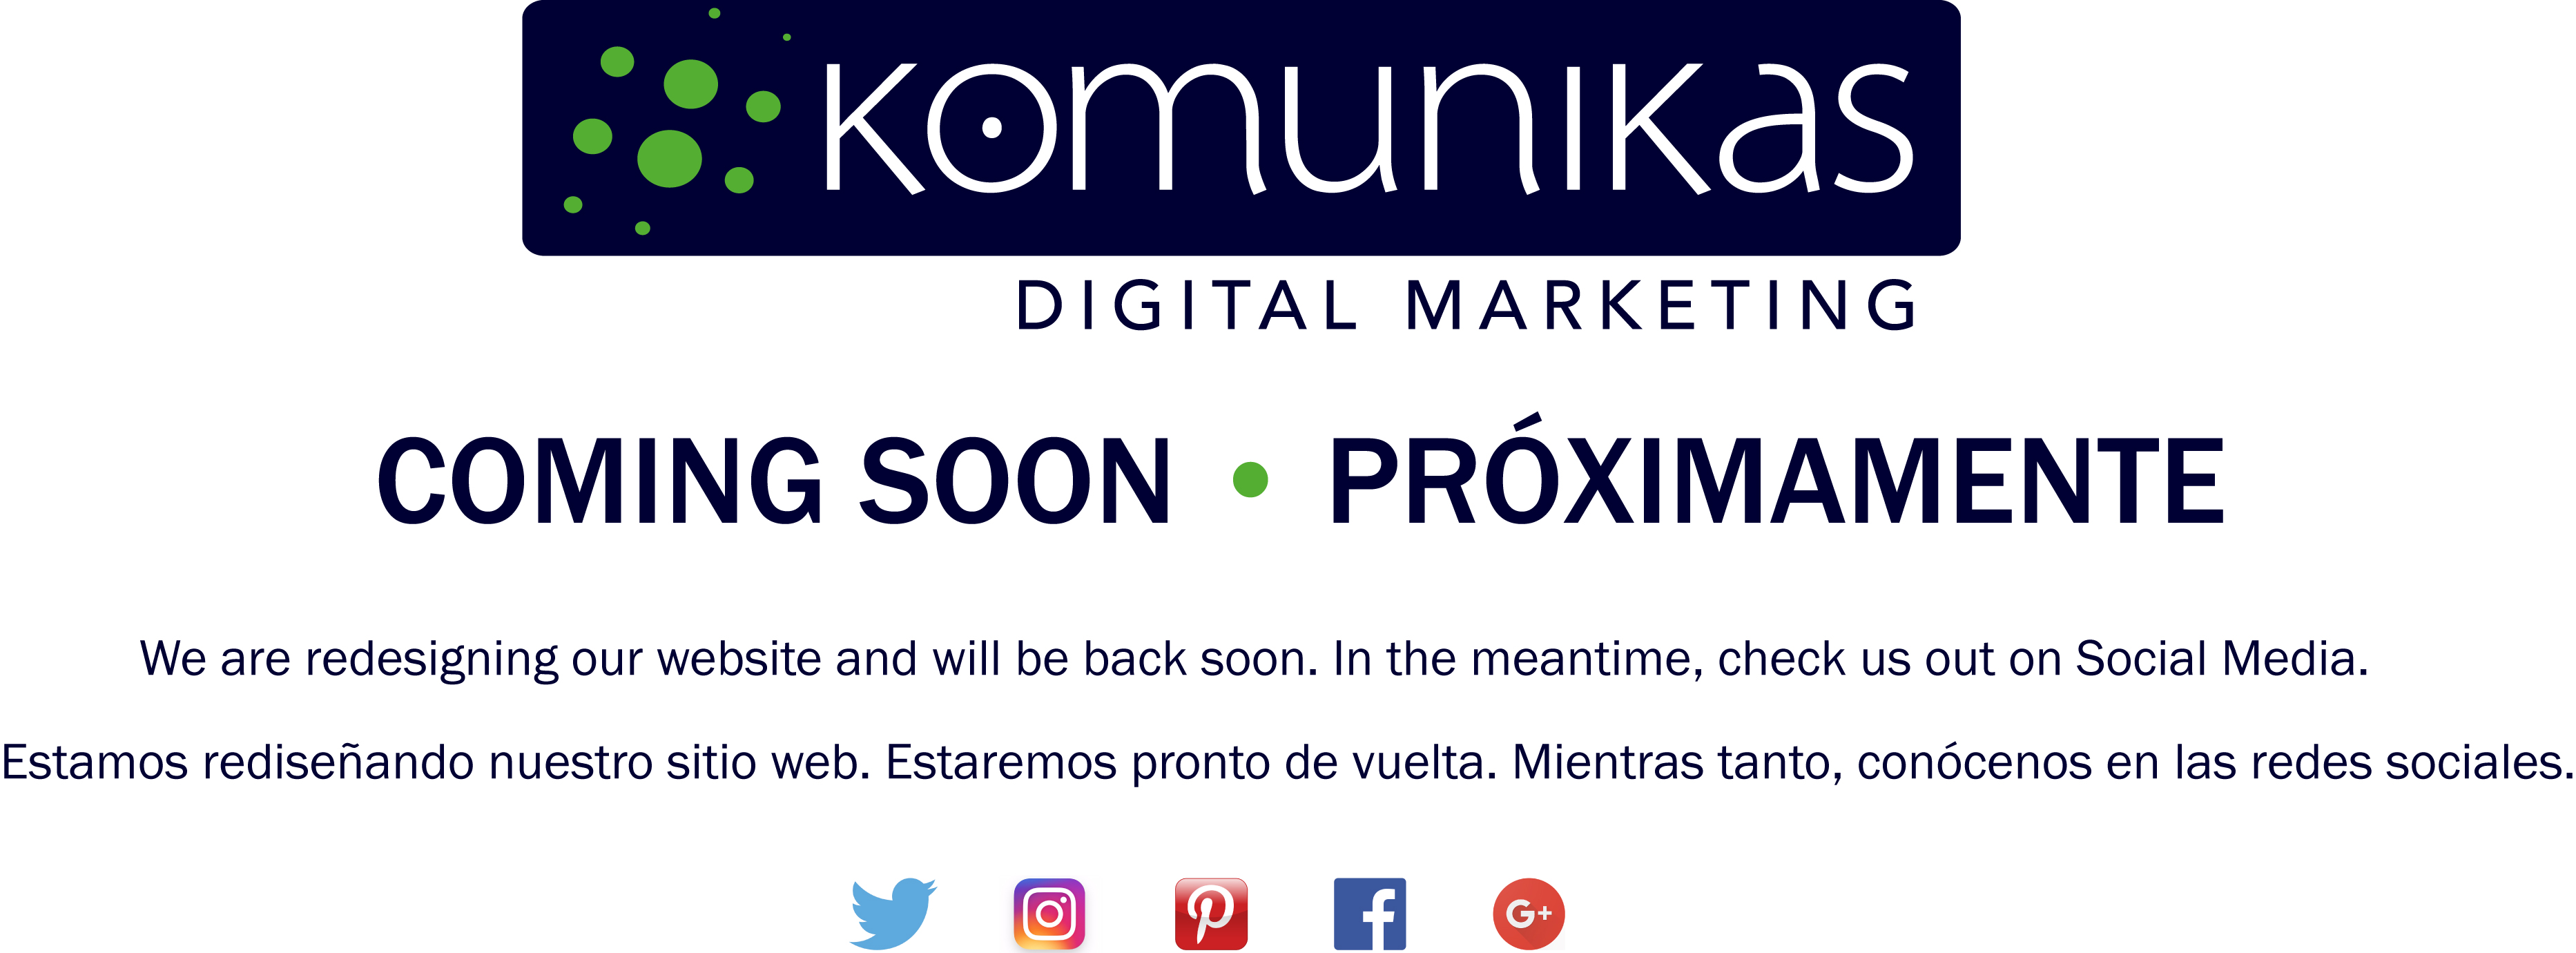 Komunikas Digital Marketing